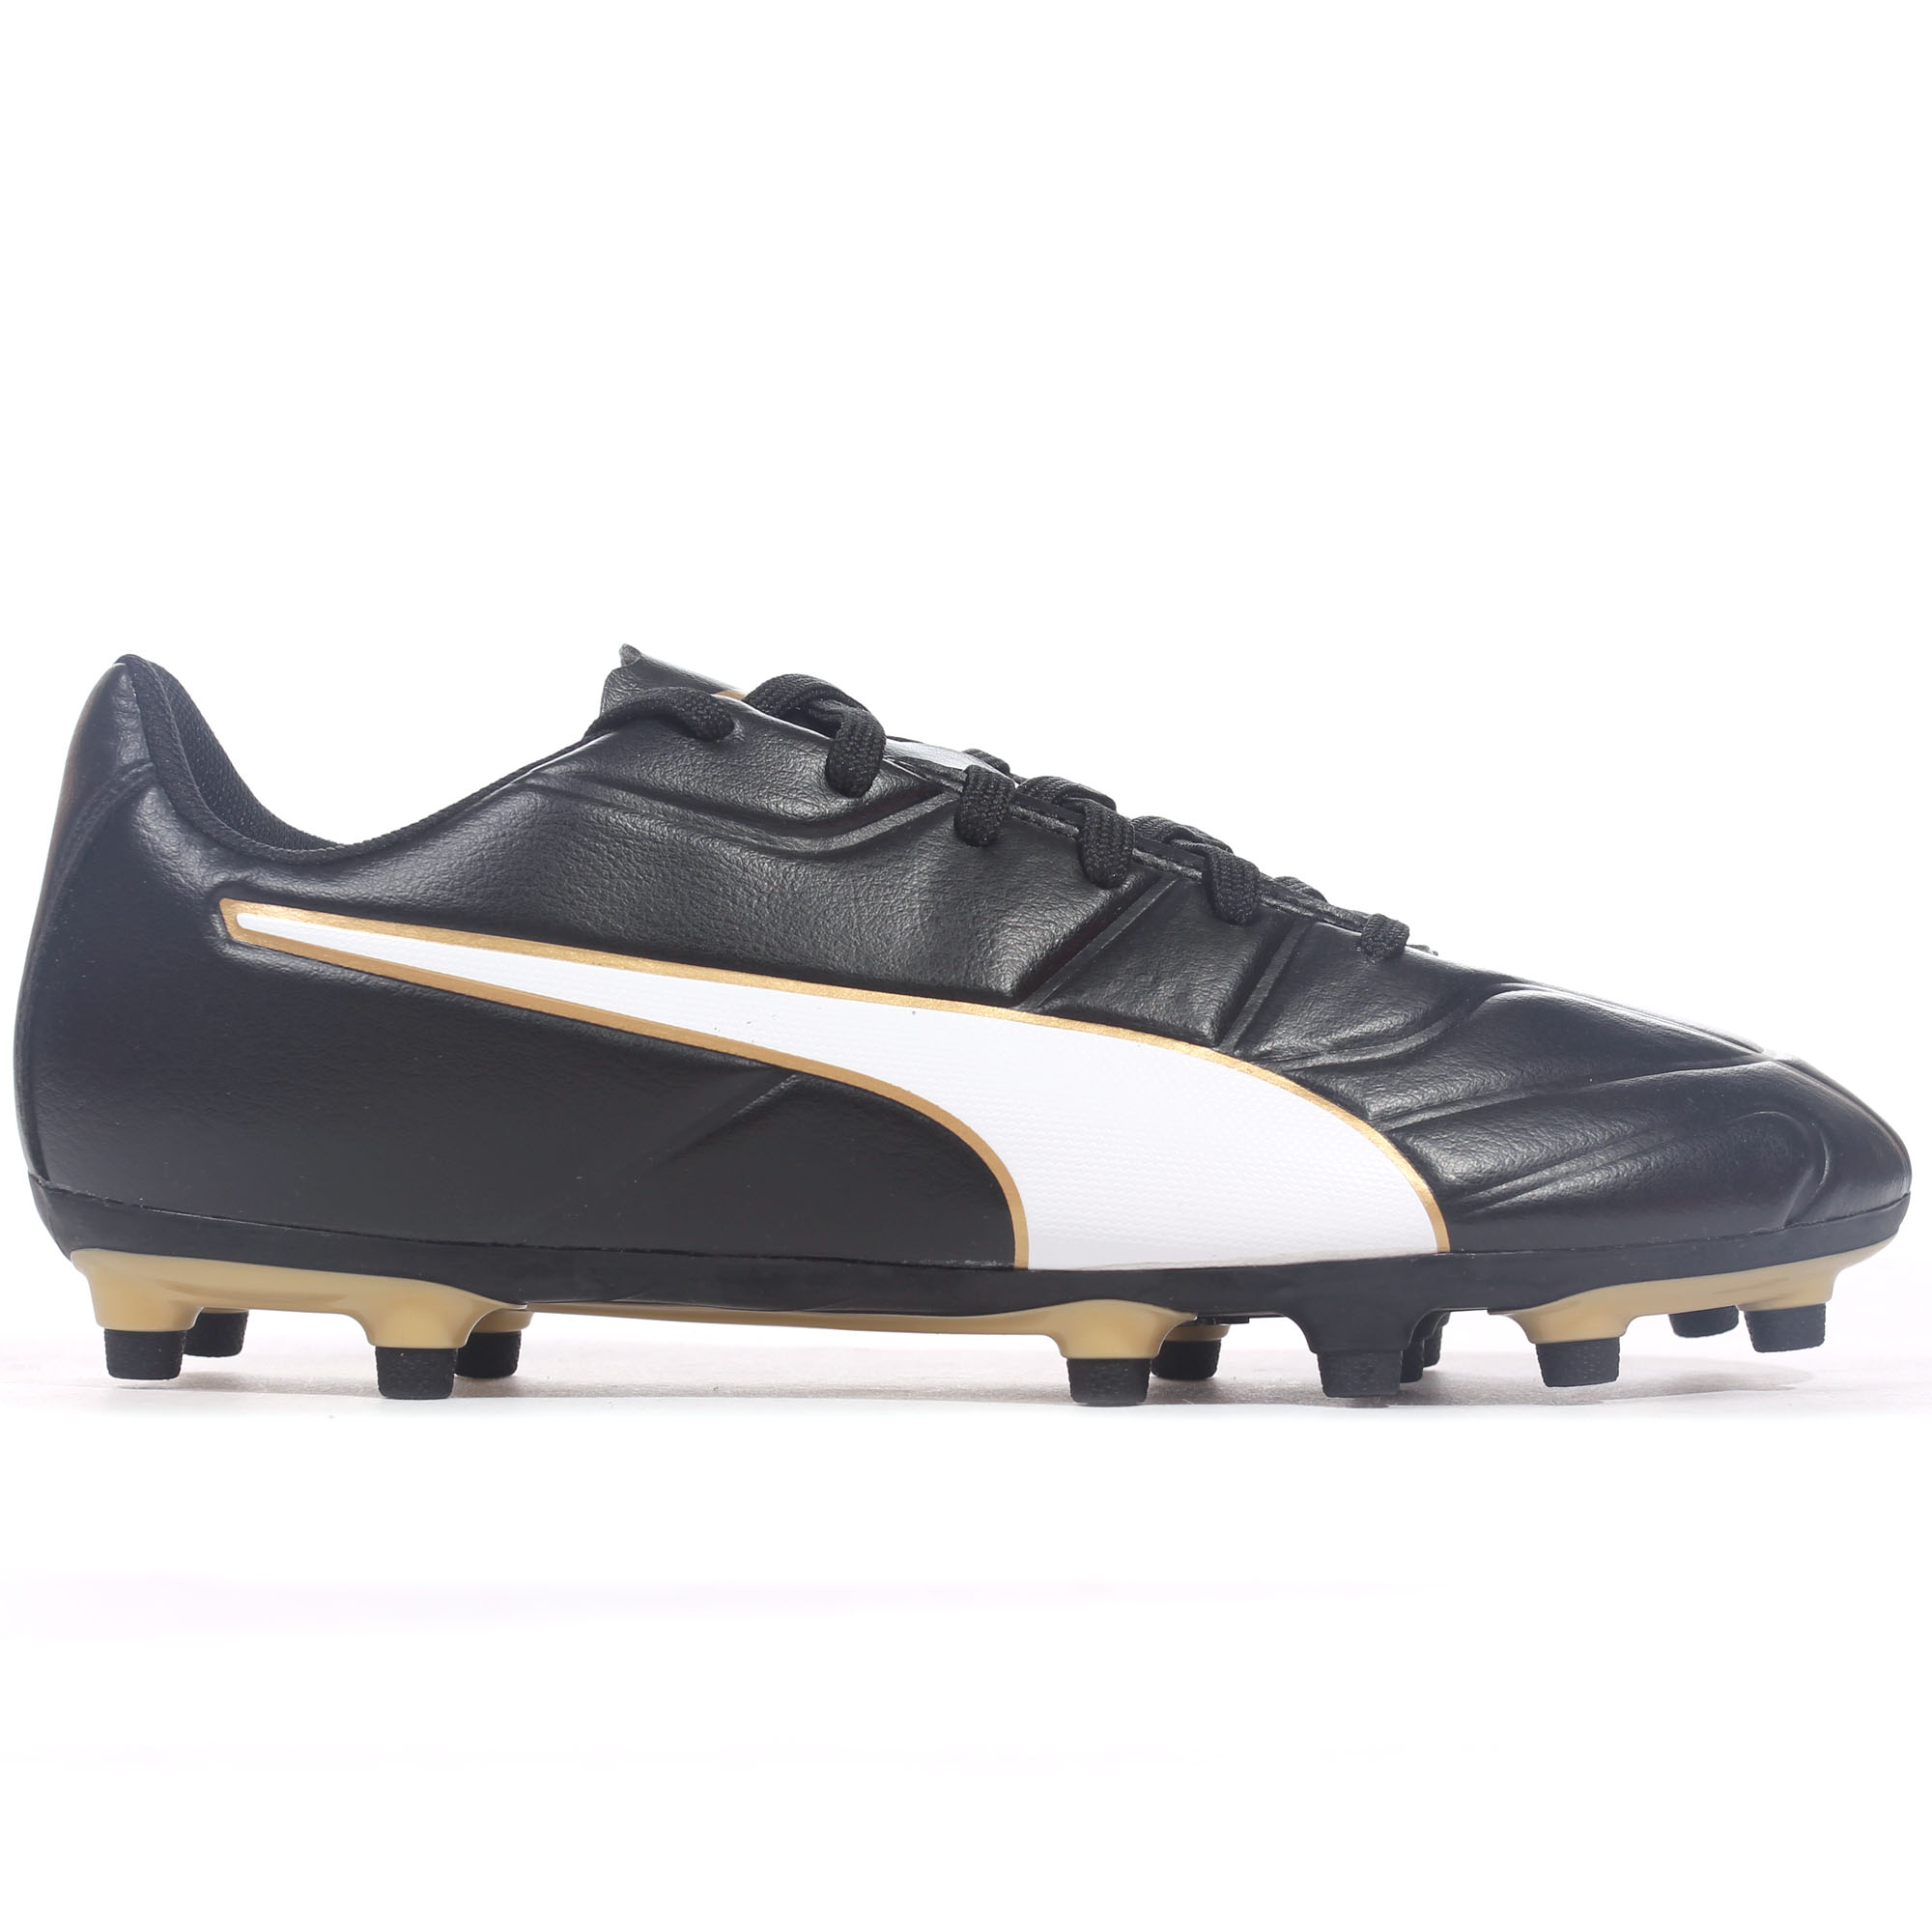 104d137f70f Details about Puma Classico C II FG Firm Ground Mens Football Boot Shoe  Black/Gold